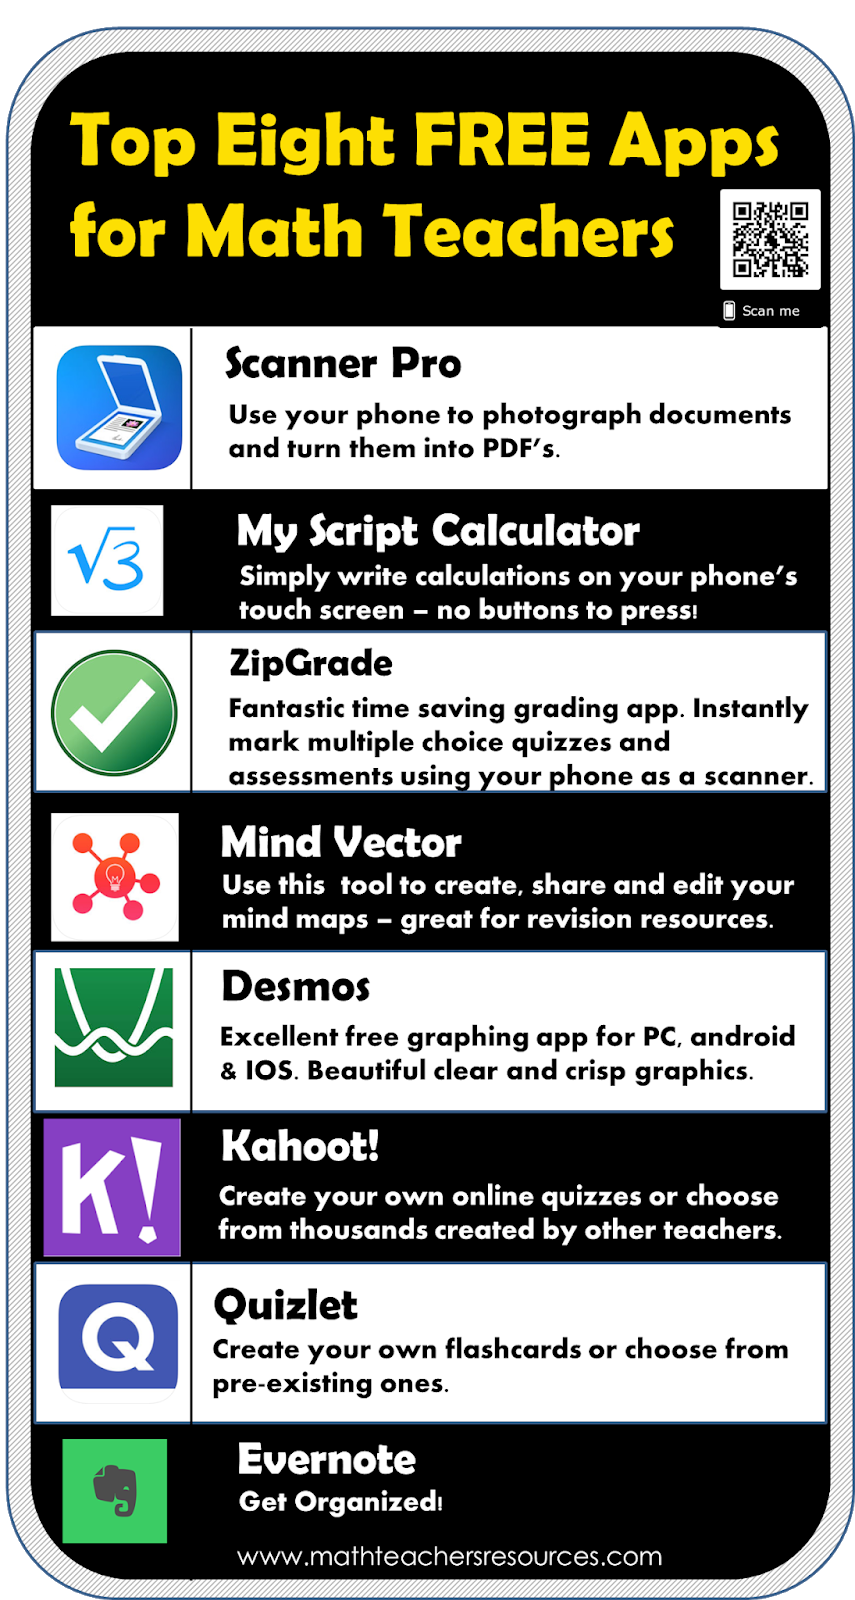 Some Great FREE Apps for Math Teachers ~ TenTors Math ...